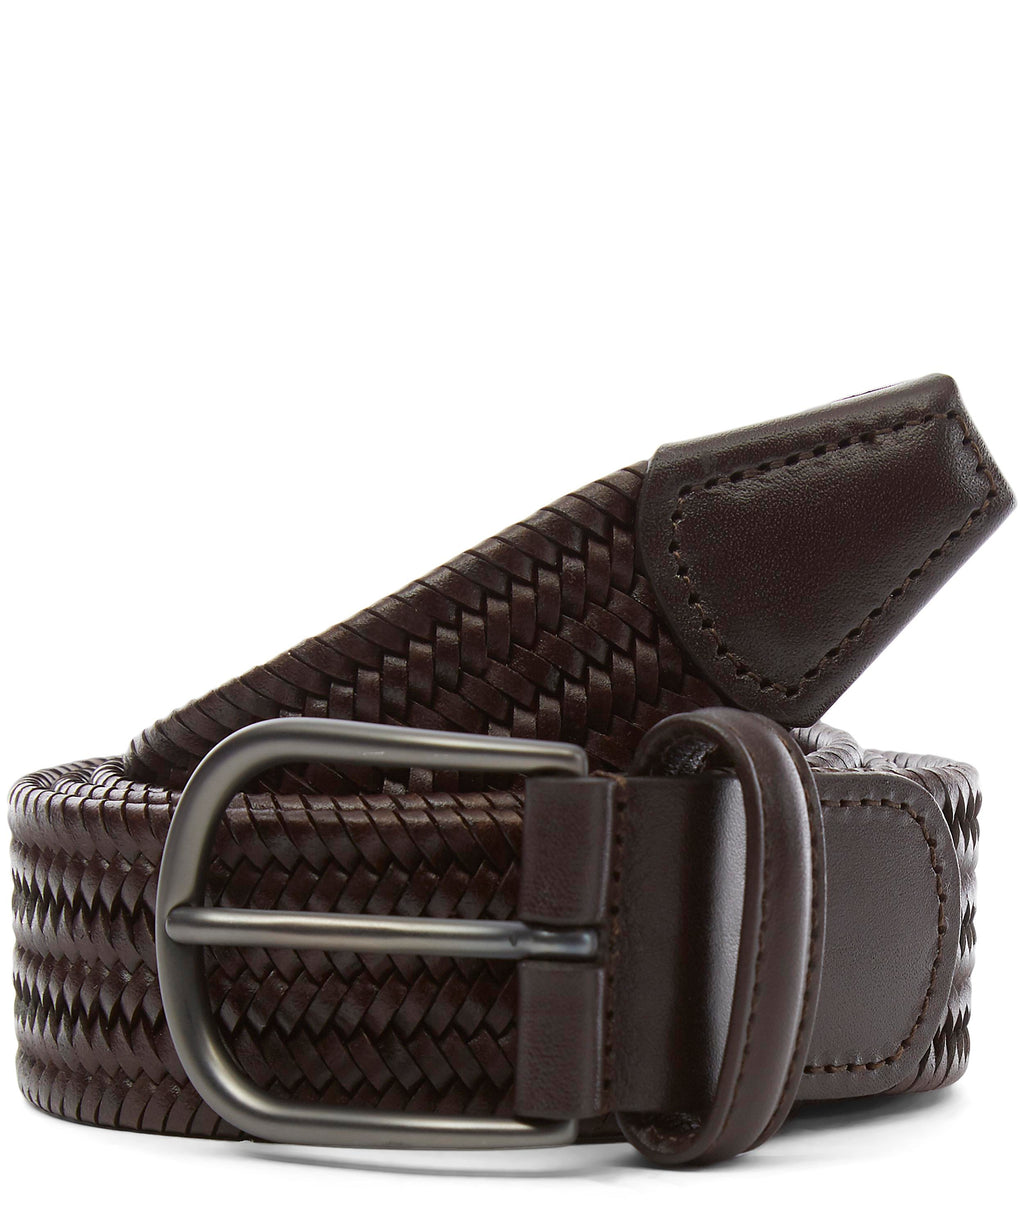 Oxblood Nappa Calf Stretch Leather Belt - Anderson's